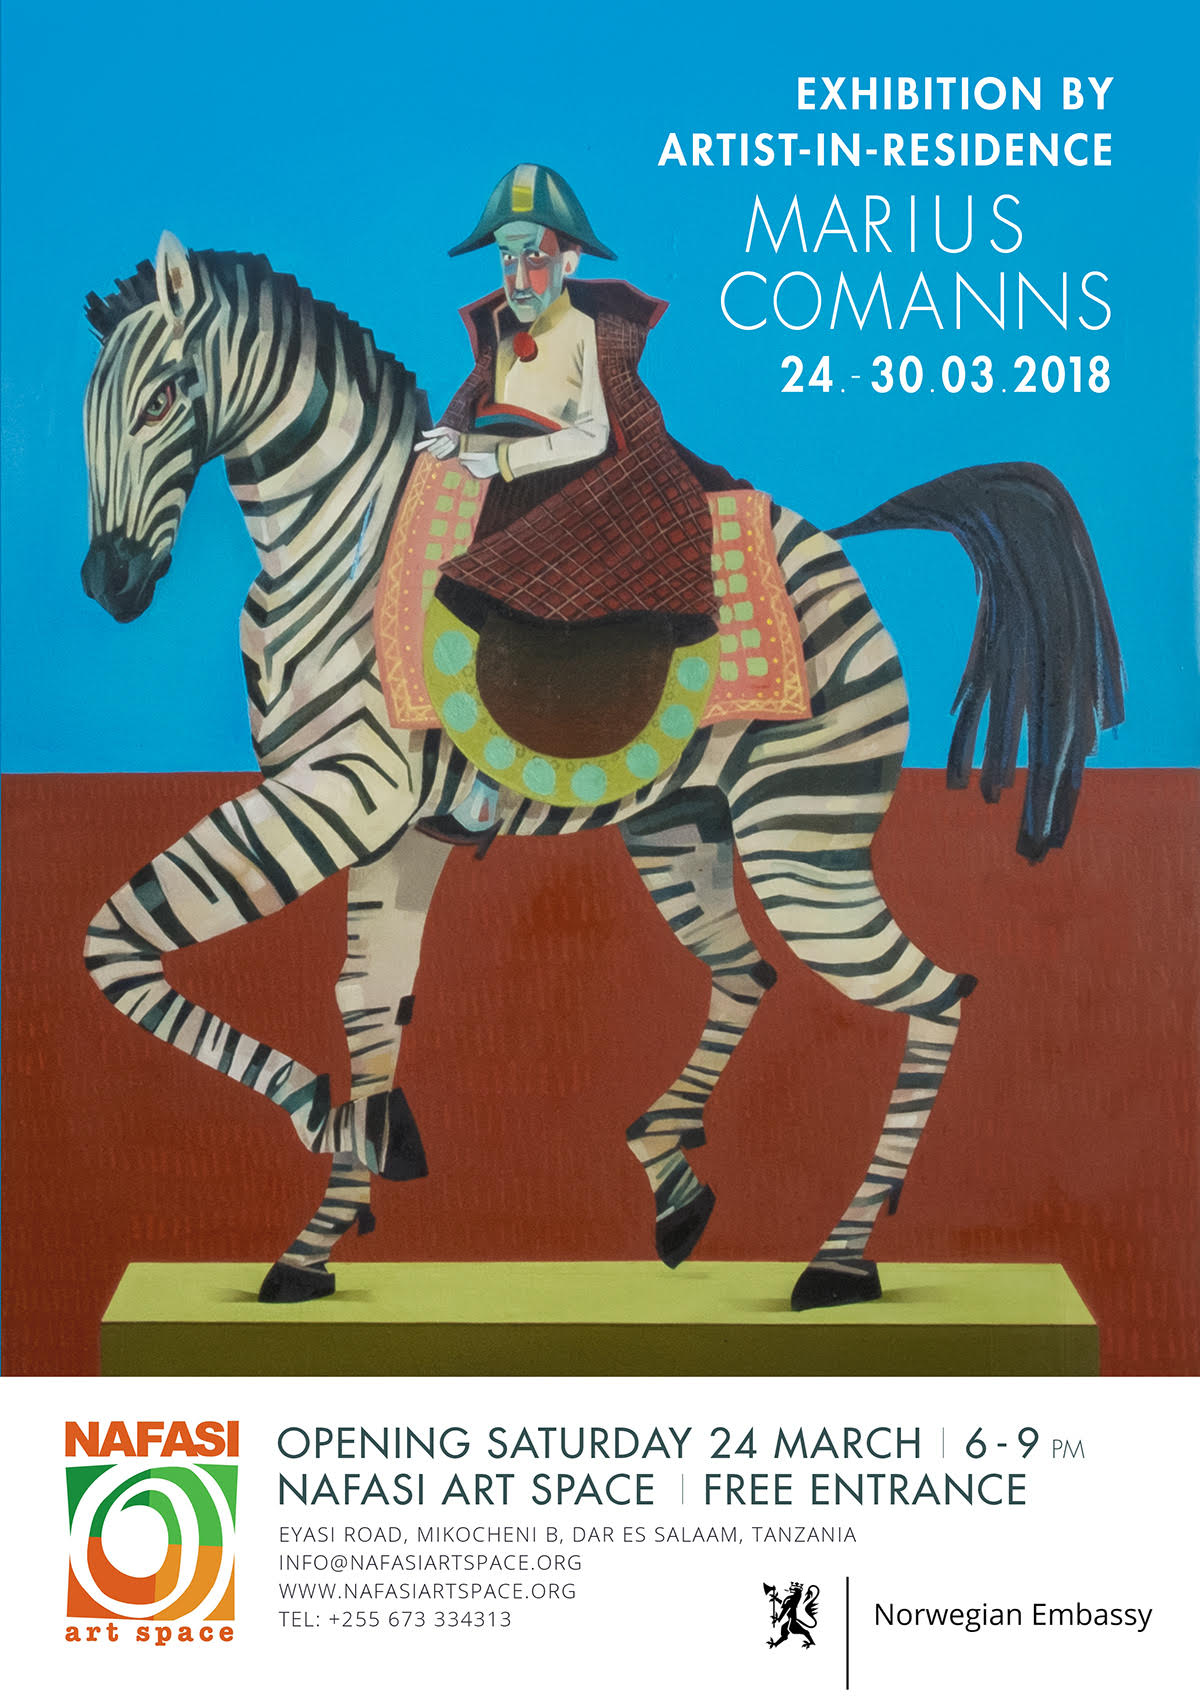 Poster Marius Comanns Artist in Residence Exhibition at Nafasi Art Space